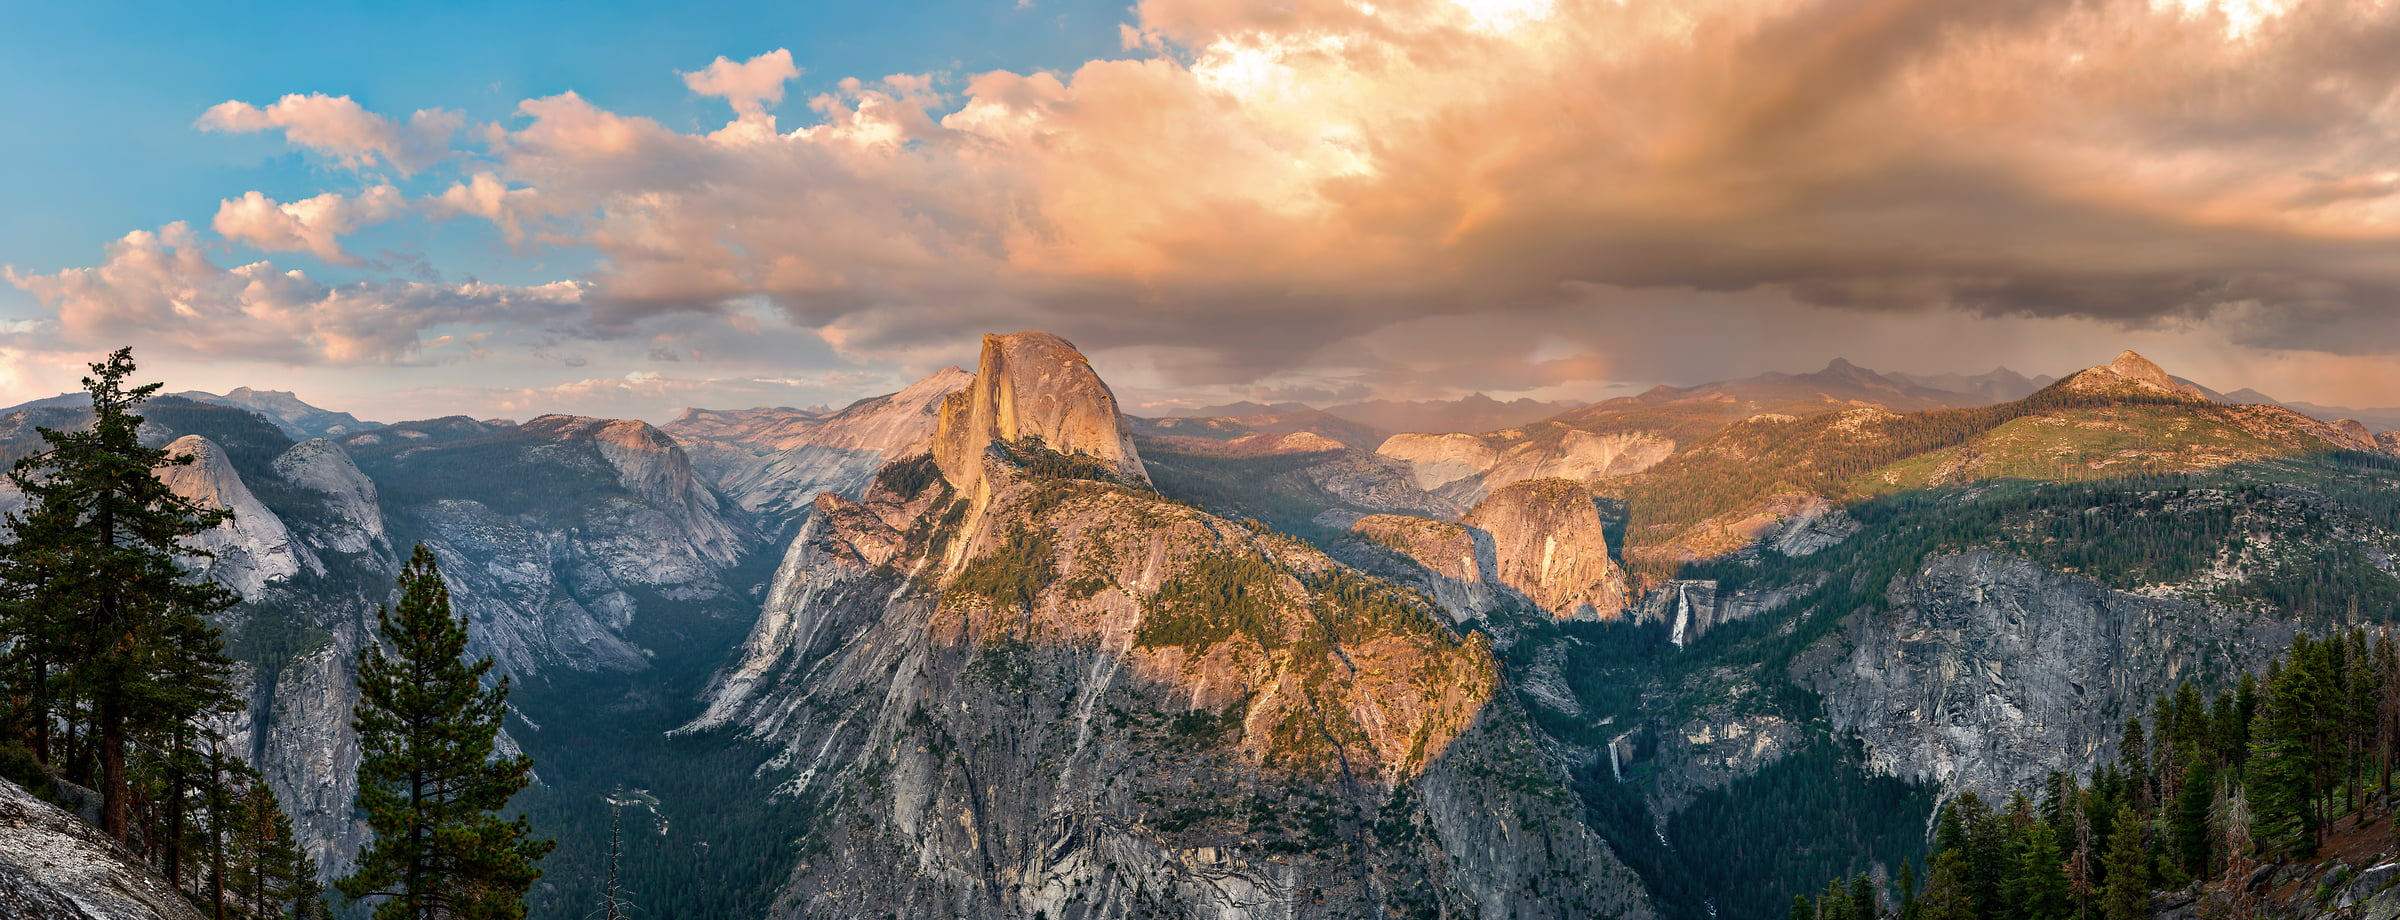 946 megapixels! A very high resolution, large-format VAST photo print of the Yosemite Naitonal Park valley and Half Dome at sunset from Glacier Point; nature landscape photo created by Justin Katz